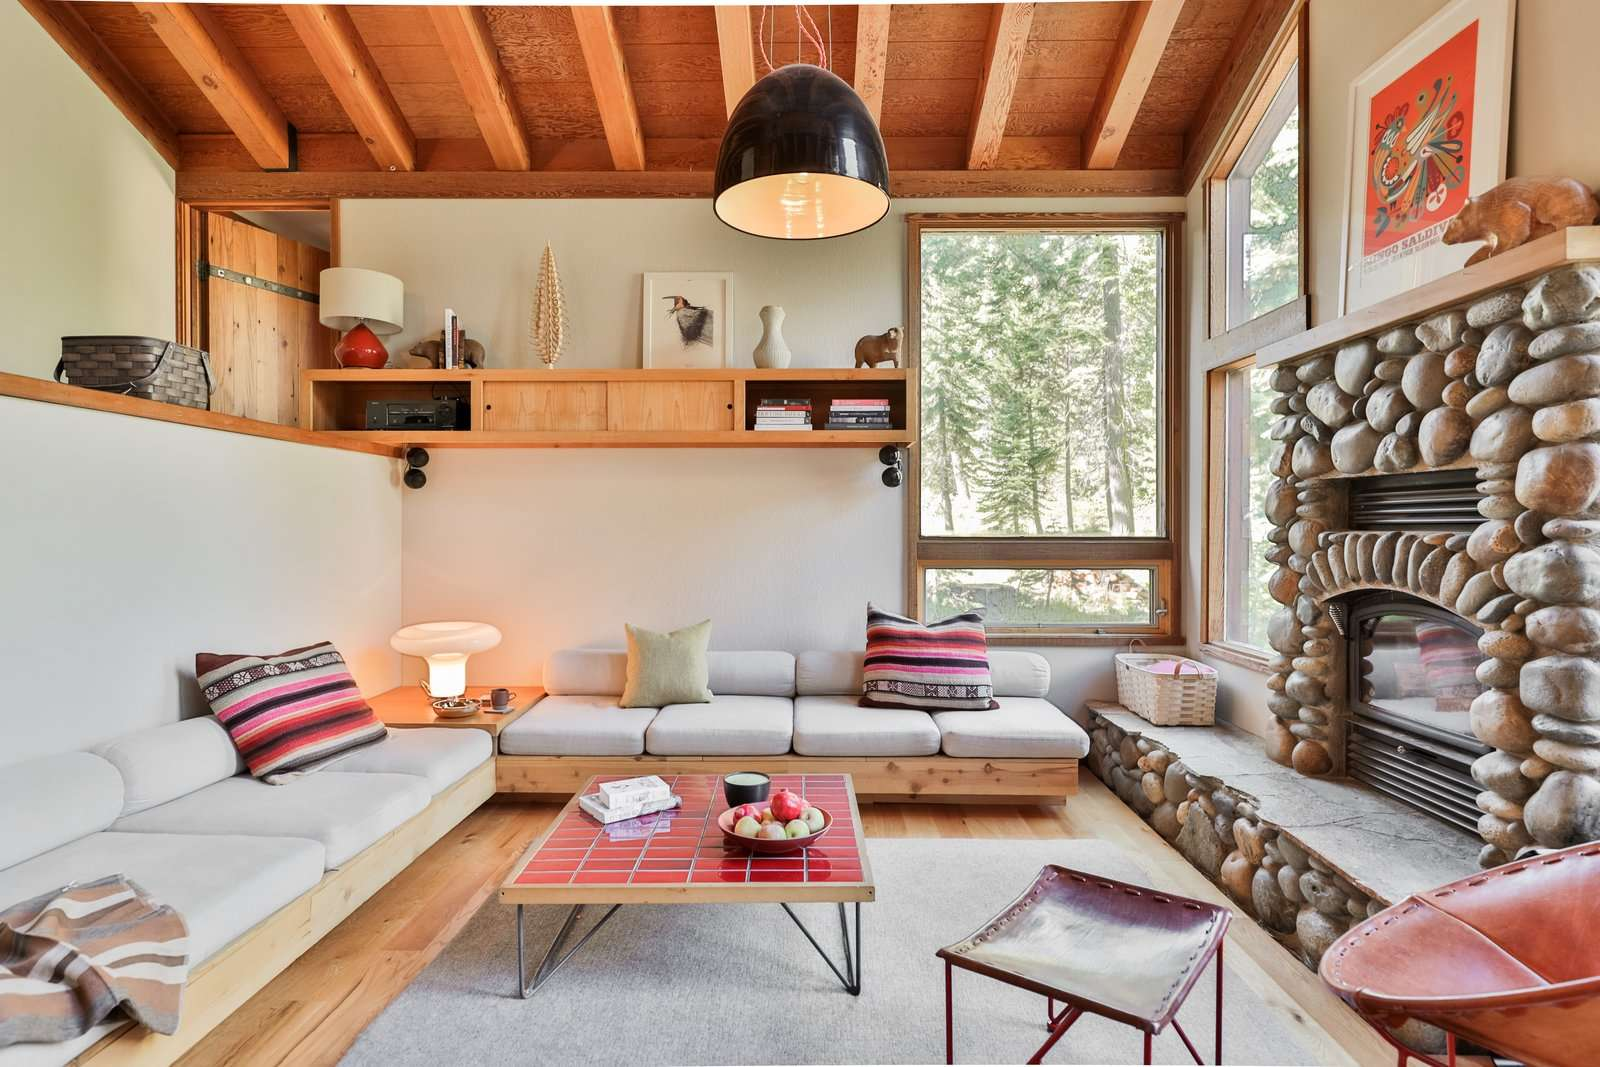 The built-in sofa anchors the living room and faces the existing fireplace. The Leather Oval Chair with a red steel base sits off to the side, and the coffee table was fashioned by attaching vintage steel legs to another tile sample board.